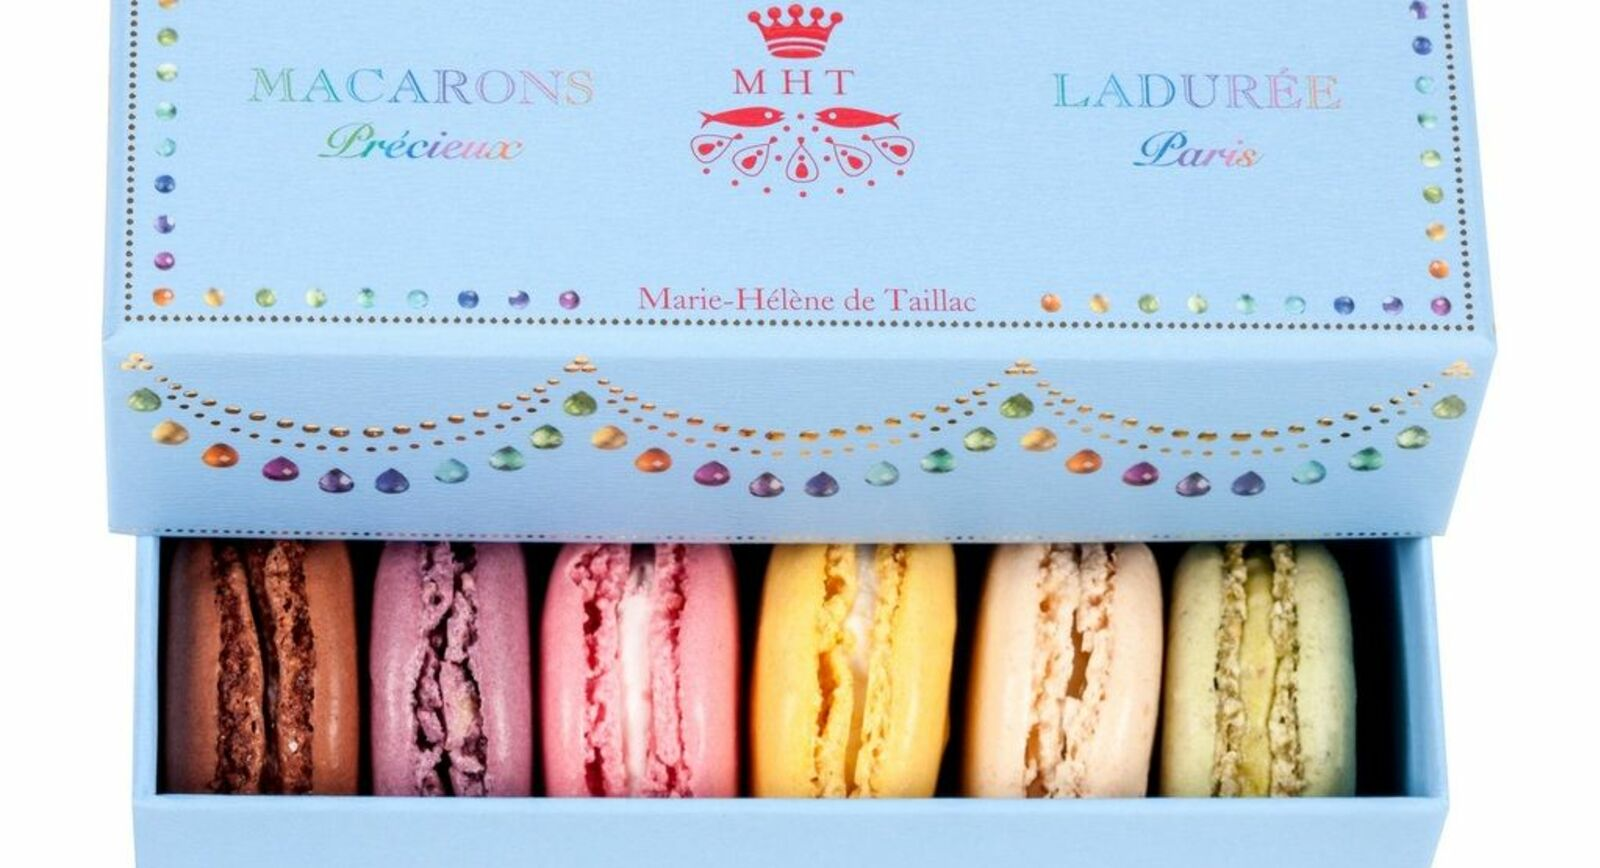 Marie-Hélène de Taillac Teams Up With Ladurée